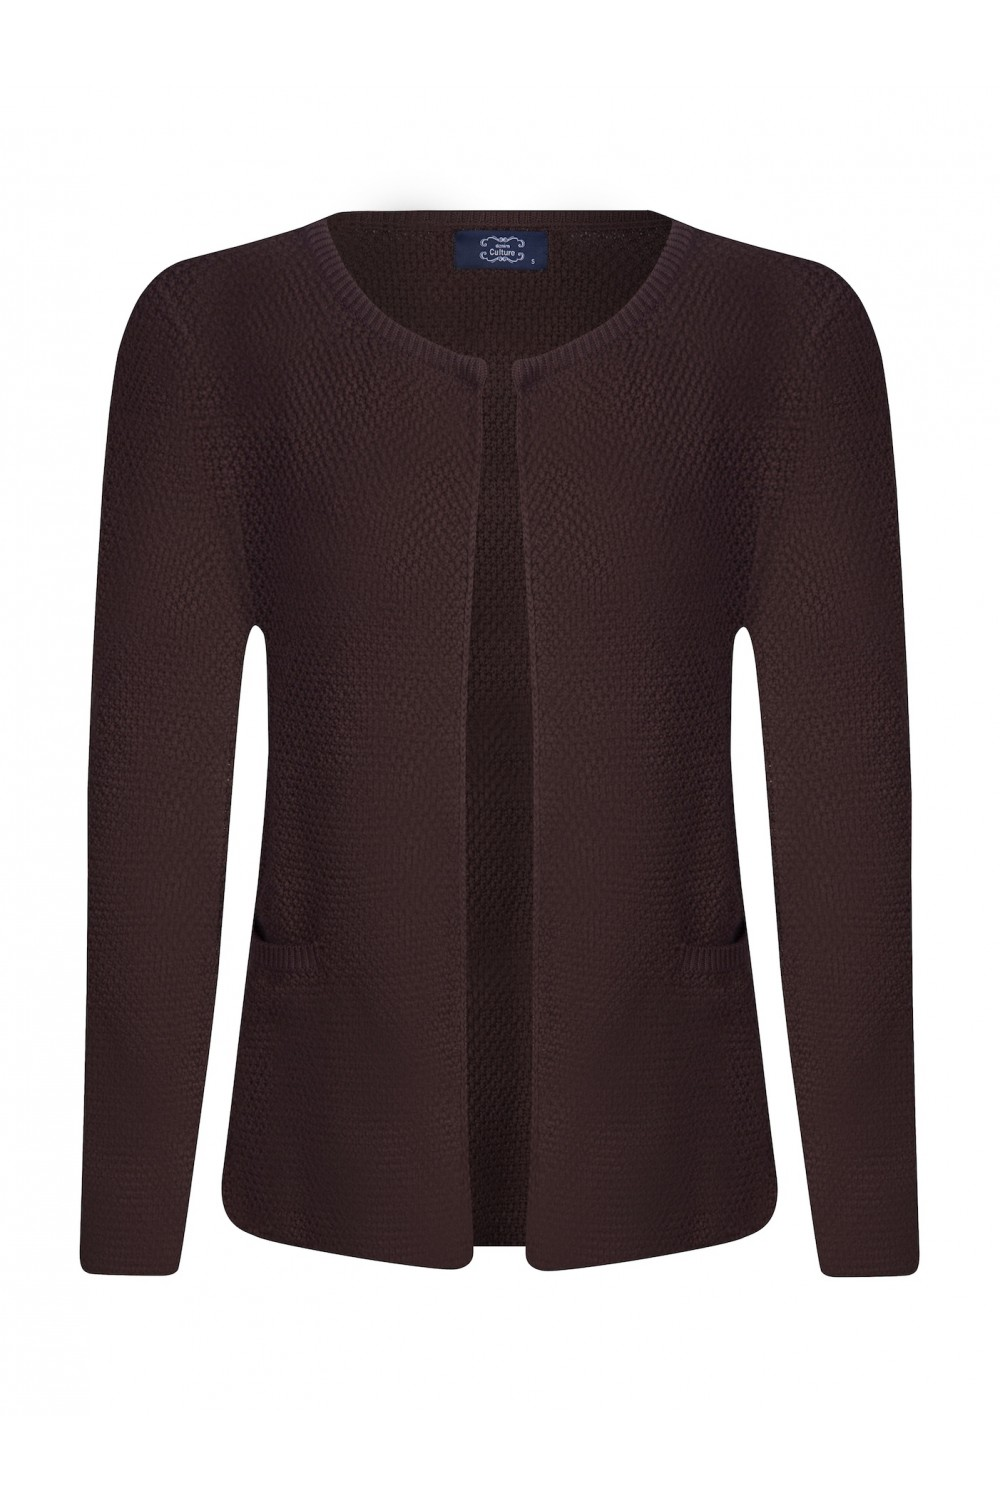 Women's Cardigan Hook Crew Neck Brown